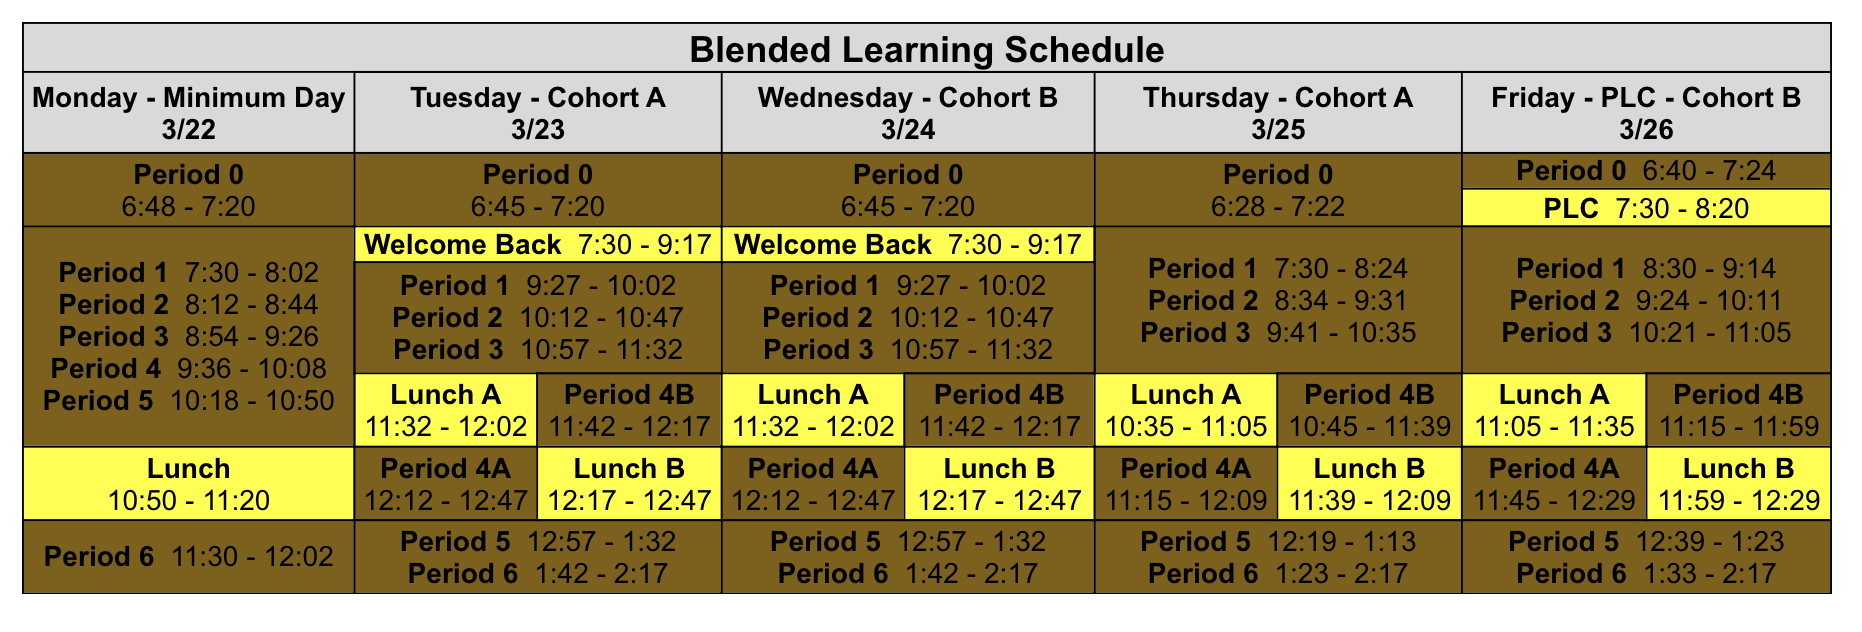 Blended In-Person Schedule for the Week of 3/22-3/26